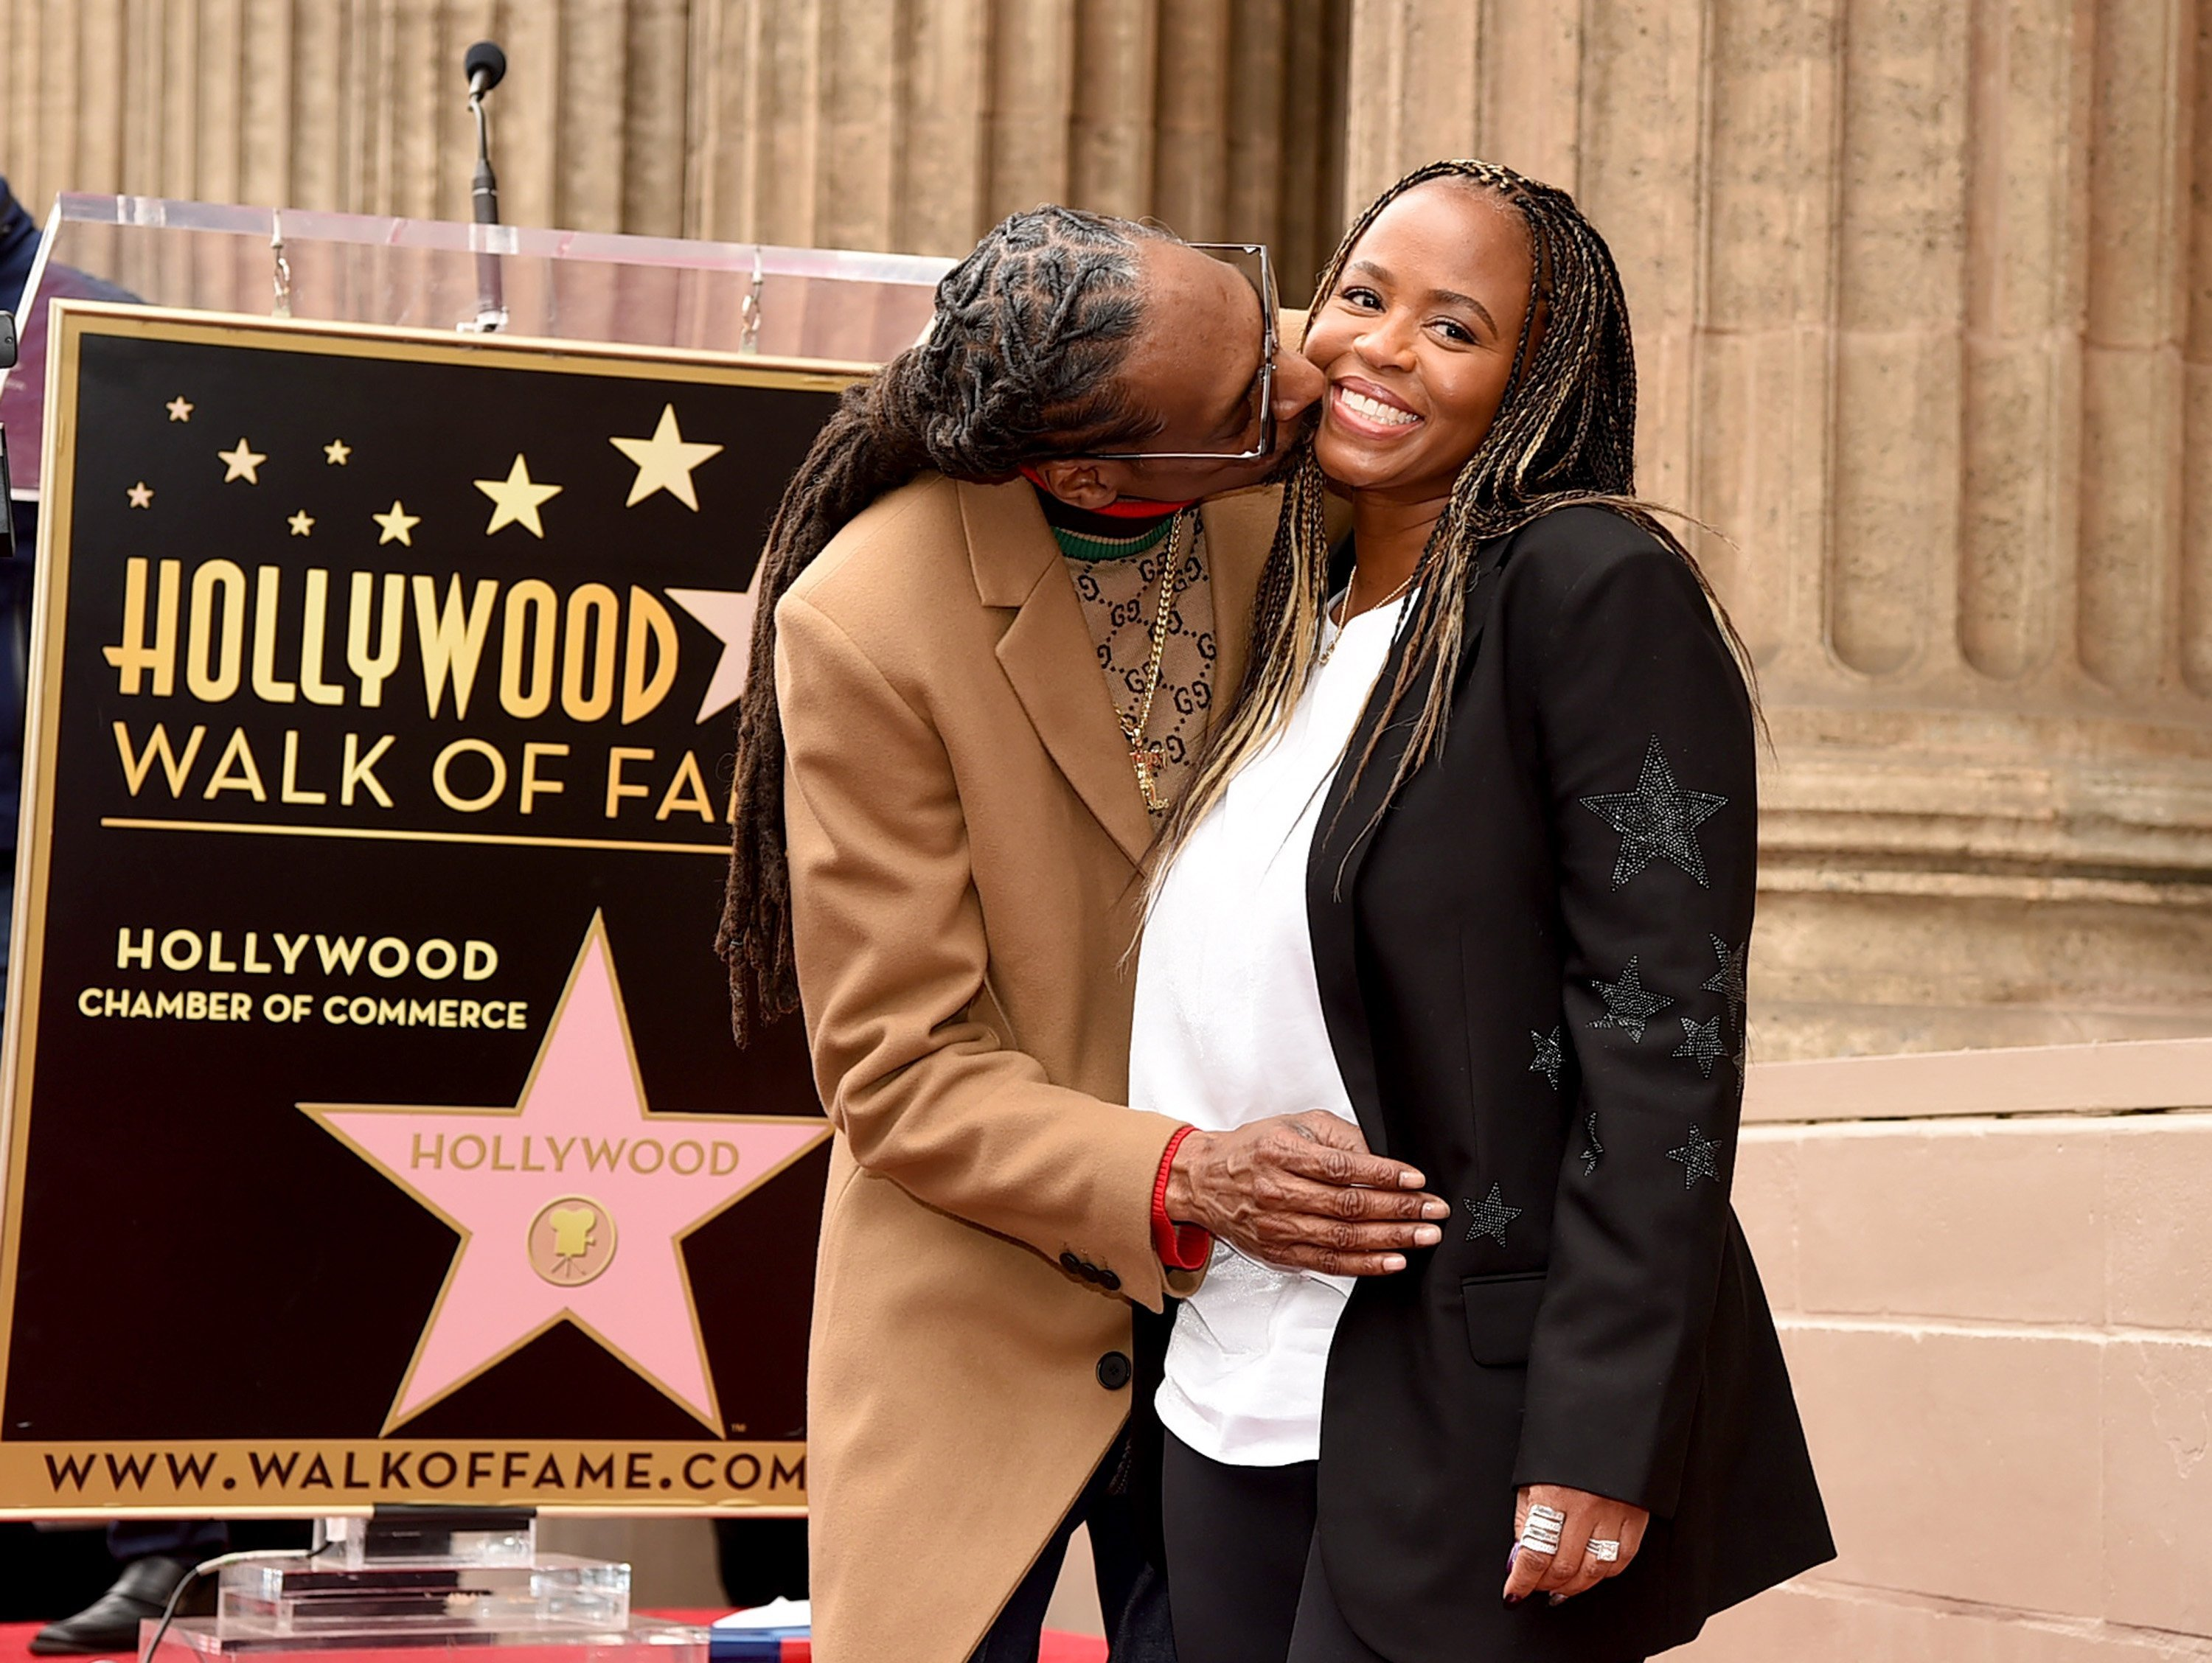 Snoop Dogg and Shante Broadus accept his own Hollywood Walk of Fame Star on November 19, 2018 | Source: Getty Images/GlobalImagesUkraine